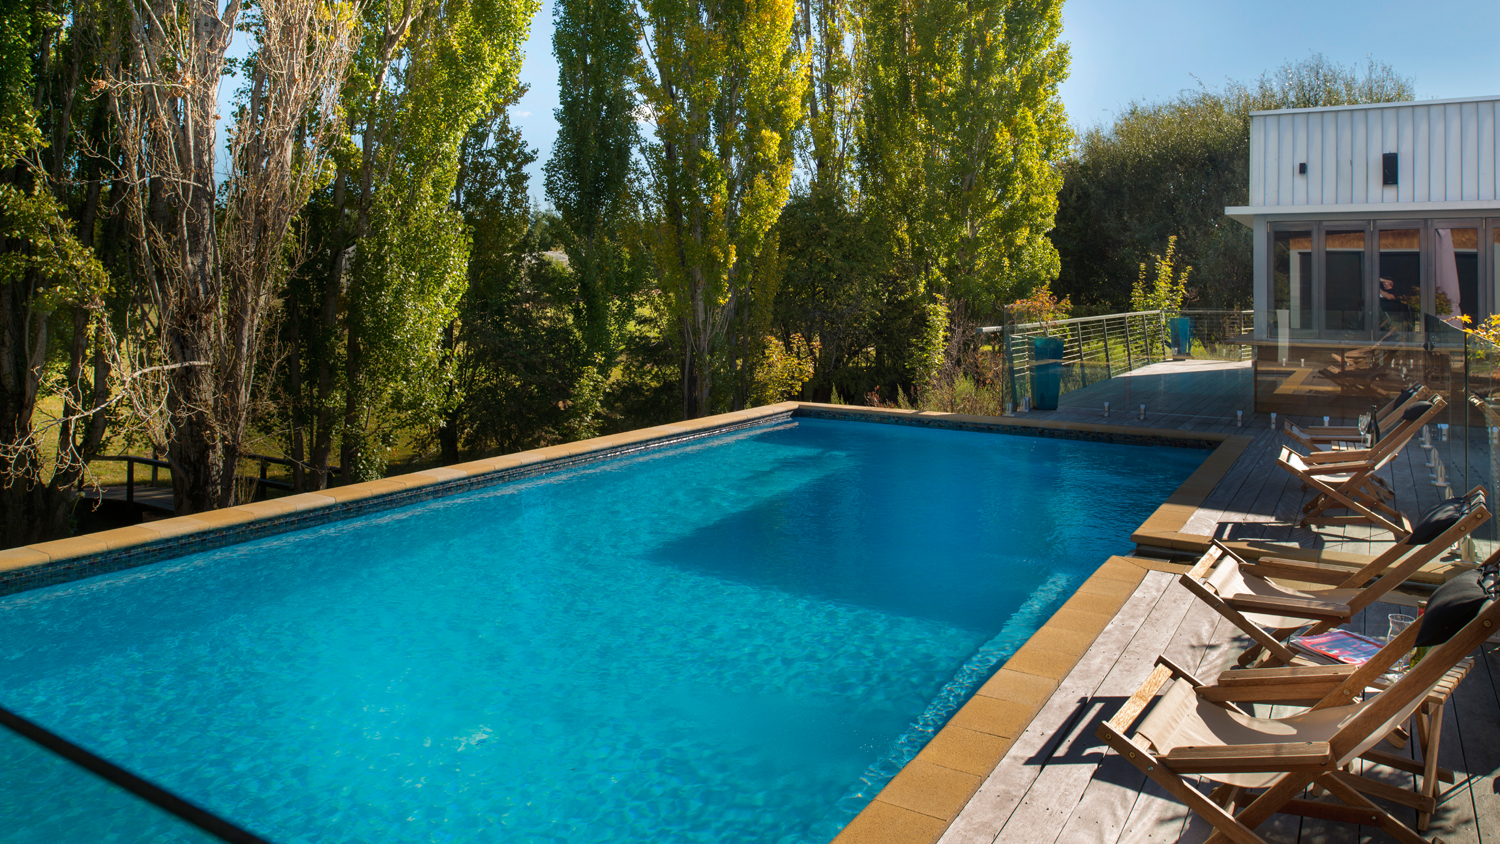 An eye-catching pool design that is user-friendly and low maintenance.